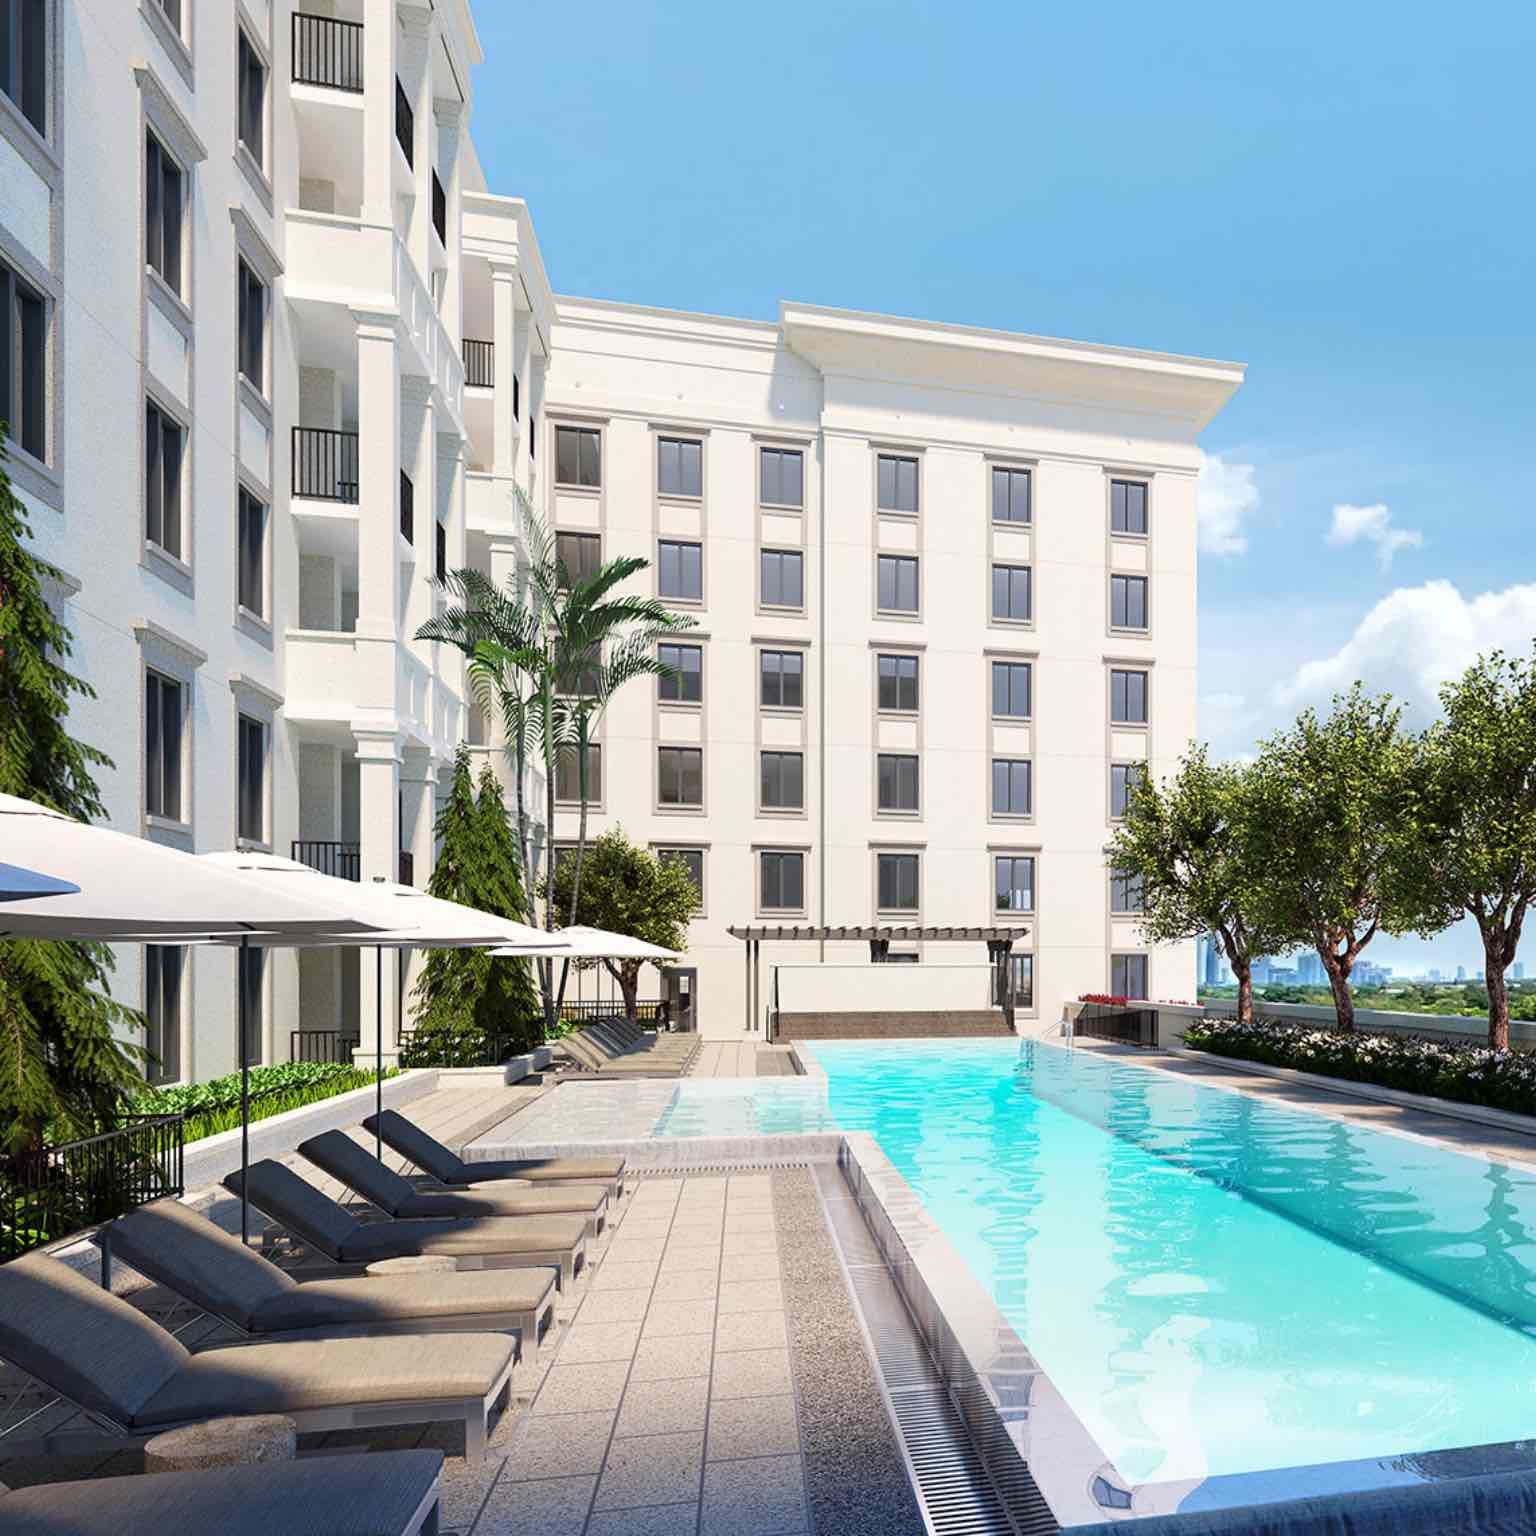 A photographic illustration of the outdoor pool space at the Life Time Living in Coral Gables, Florida